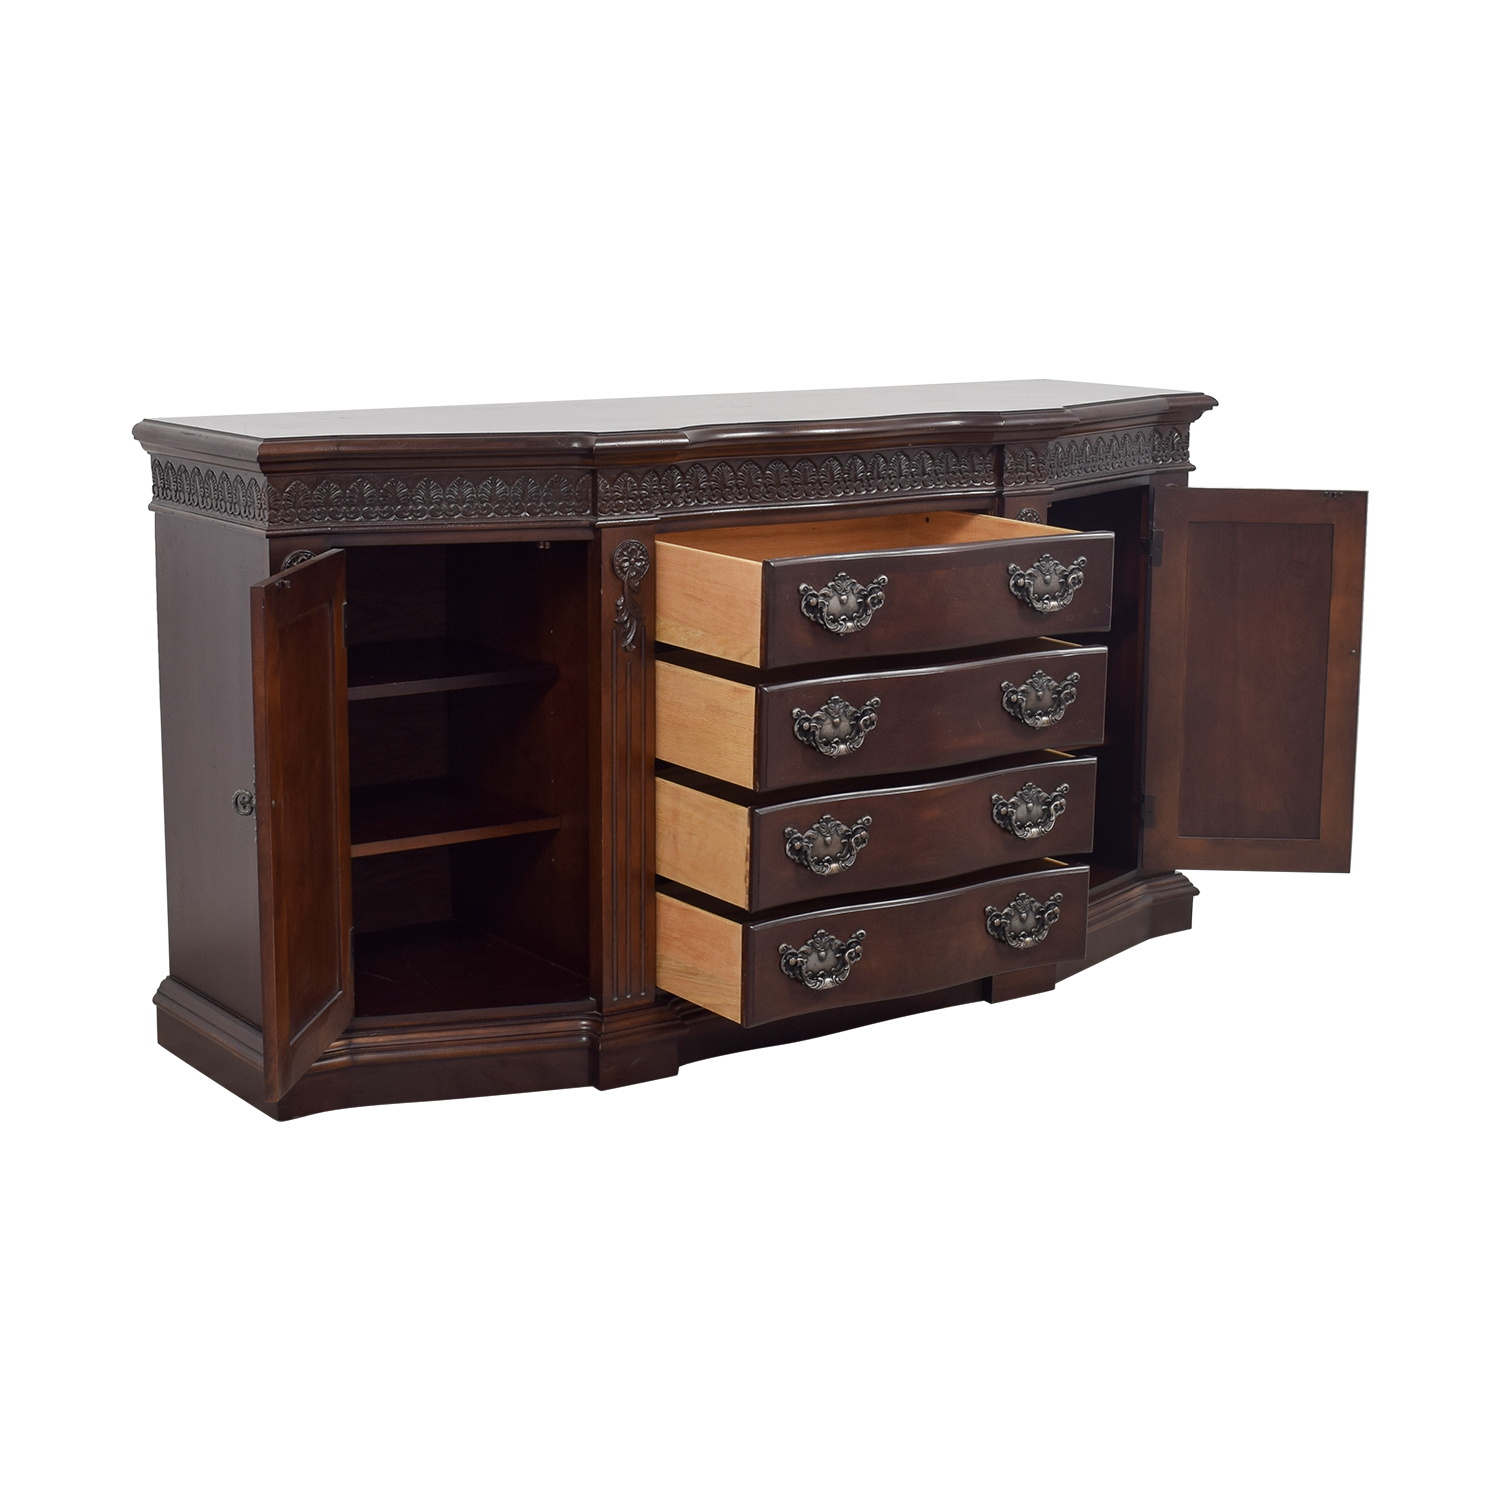 Bernhardt Bernhardt Four Drawer Wood Buffet coupon